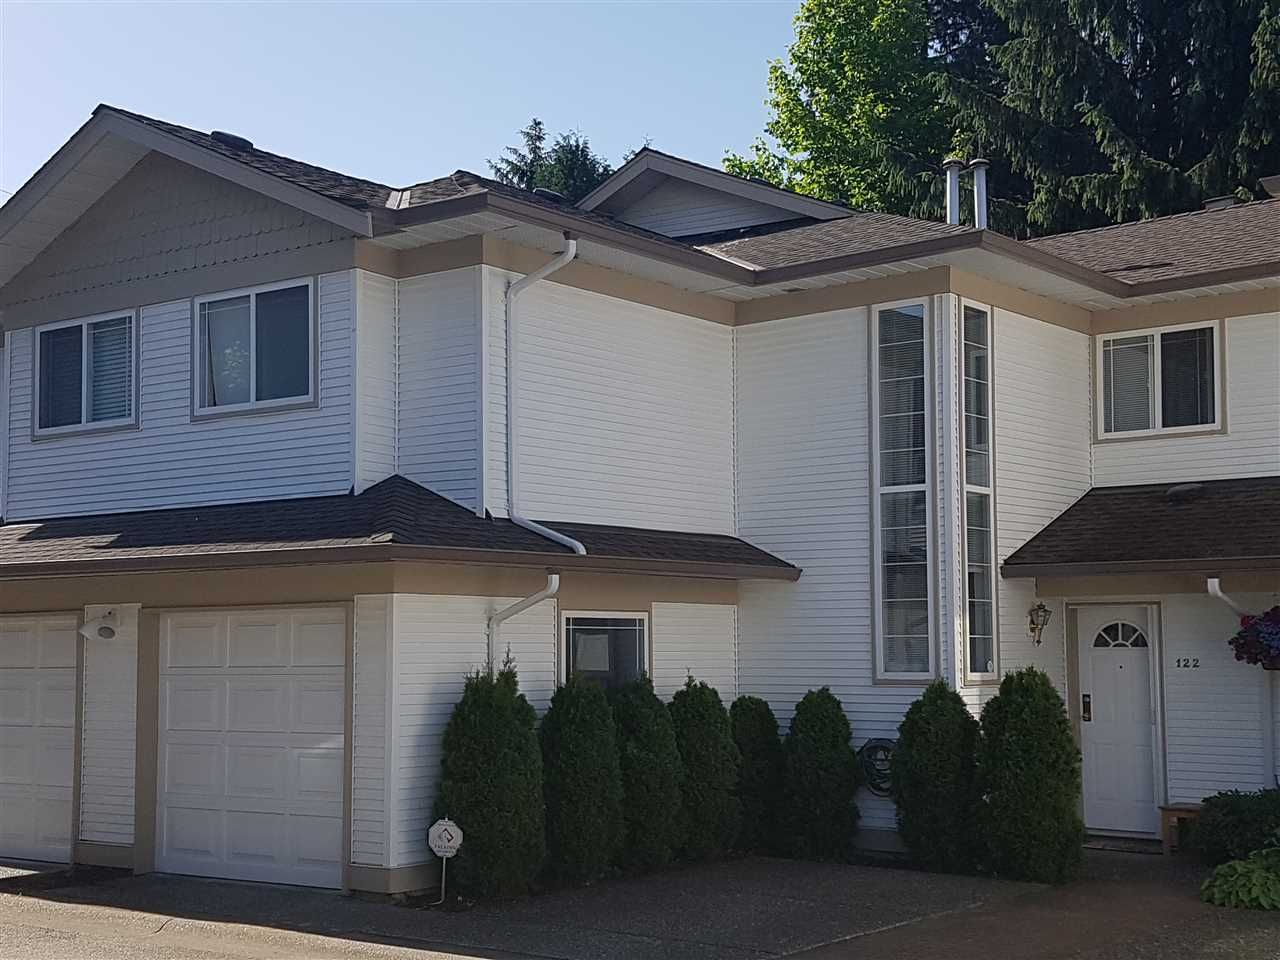 """Main Photo: 122 16233 82ND Avenue in Surrey: Fleetwood Tynehead Townhouse for sale in """"The Orchard"""" : MLS®# R2174278"""